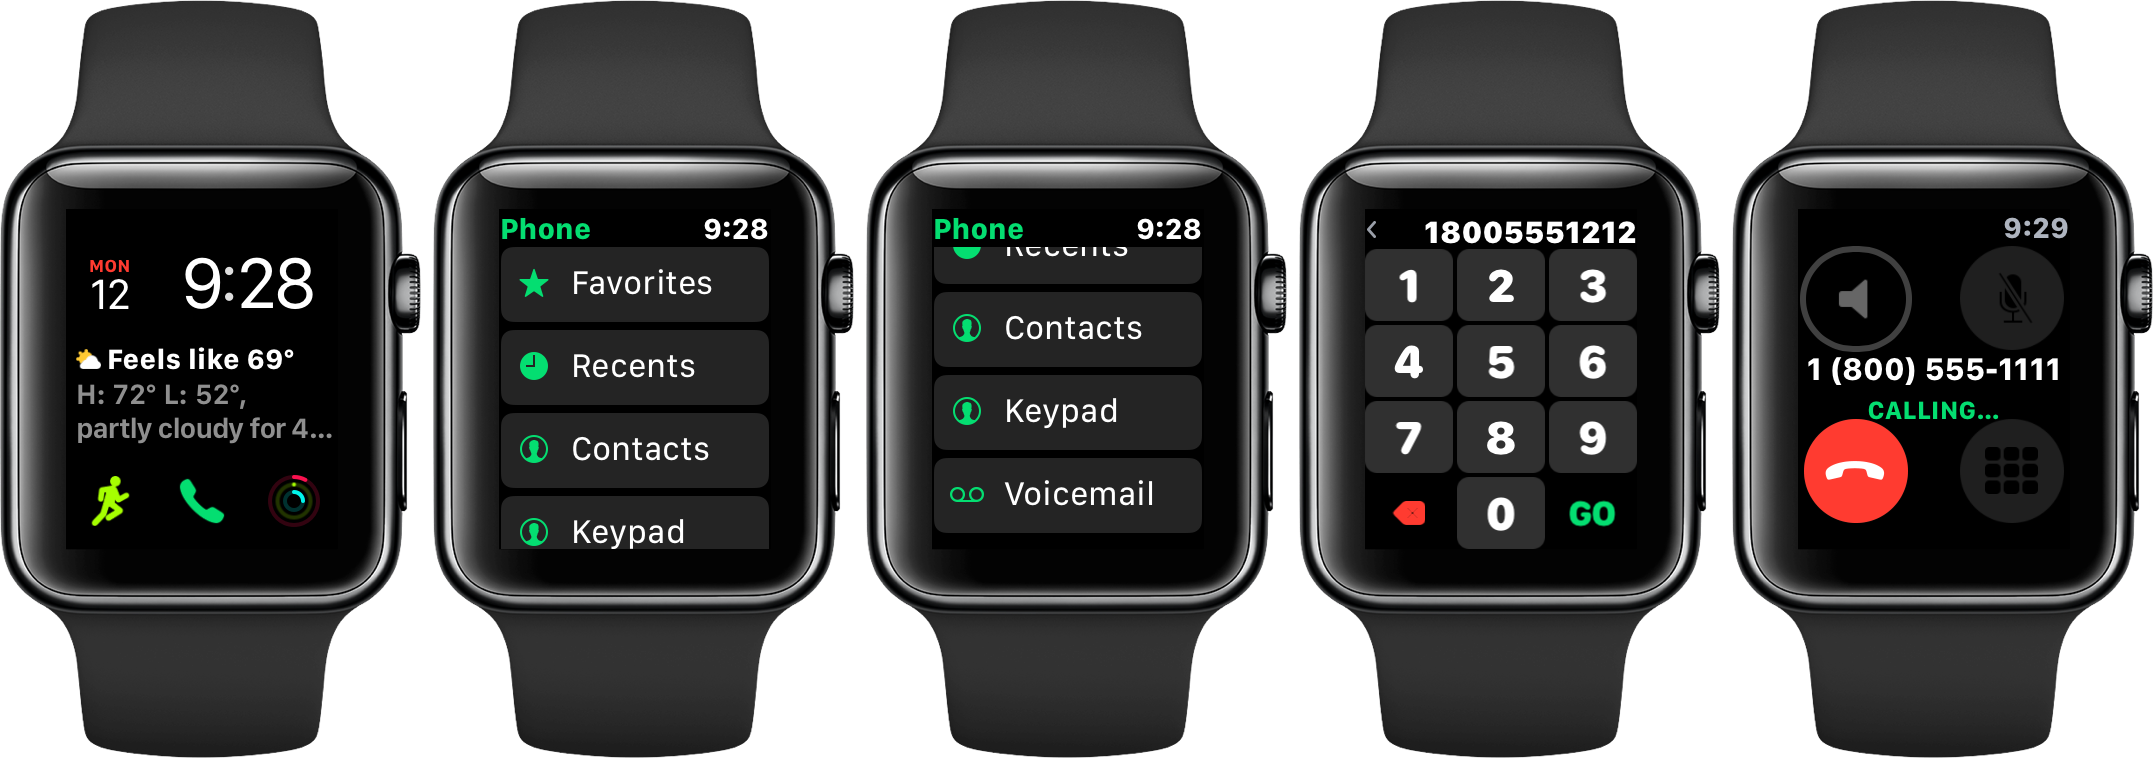 Phone Keypad is Coming to the Apple Watch in watchOS 4